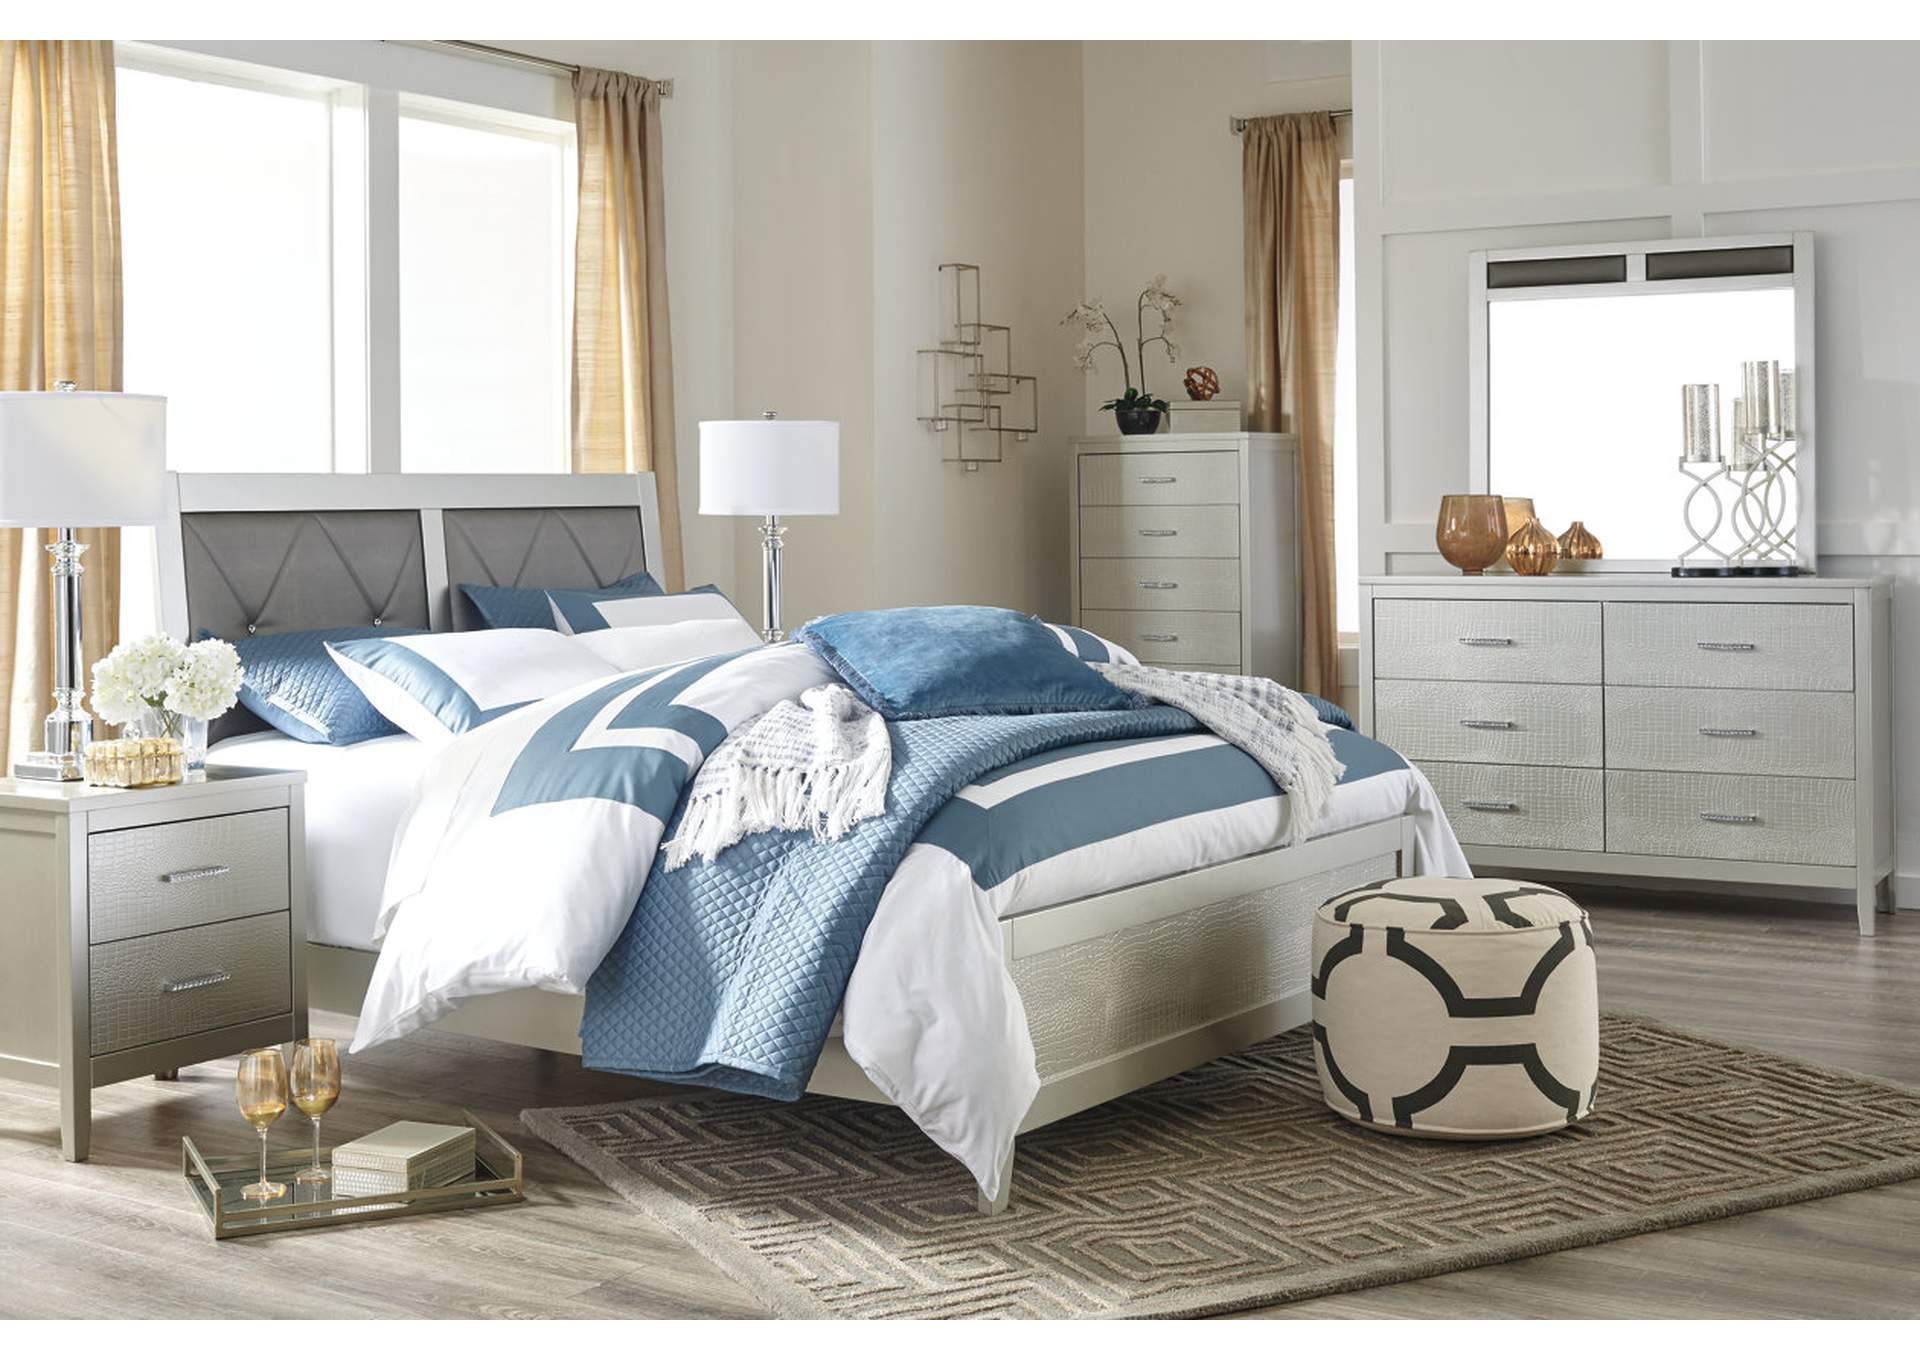 Olivet Silver California King Upholstered Panel Bed w/Dresser, Mirror & Drawer Chest,Signature Design by Ashley